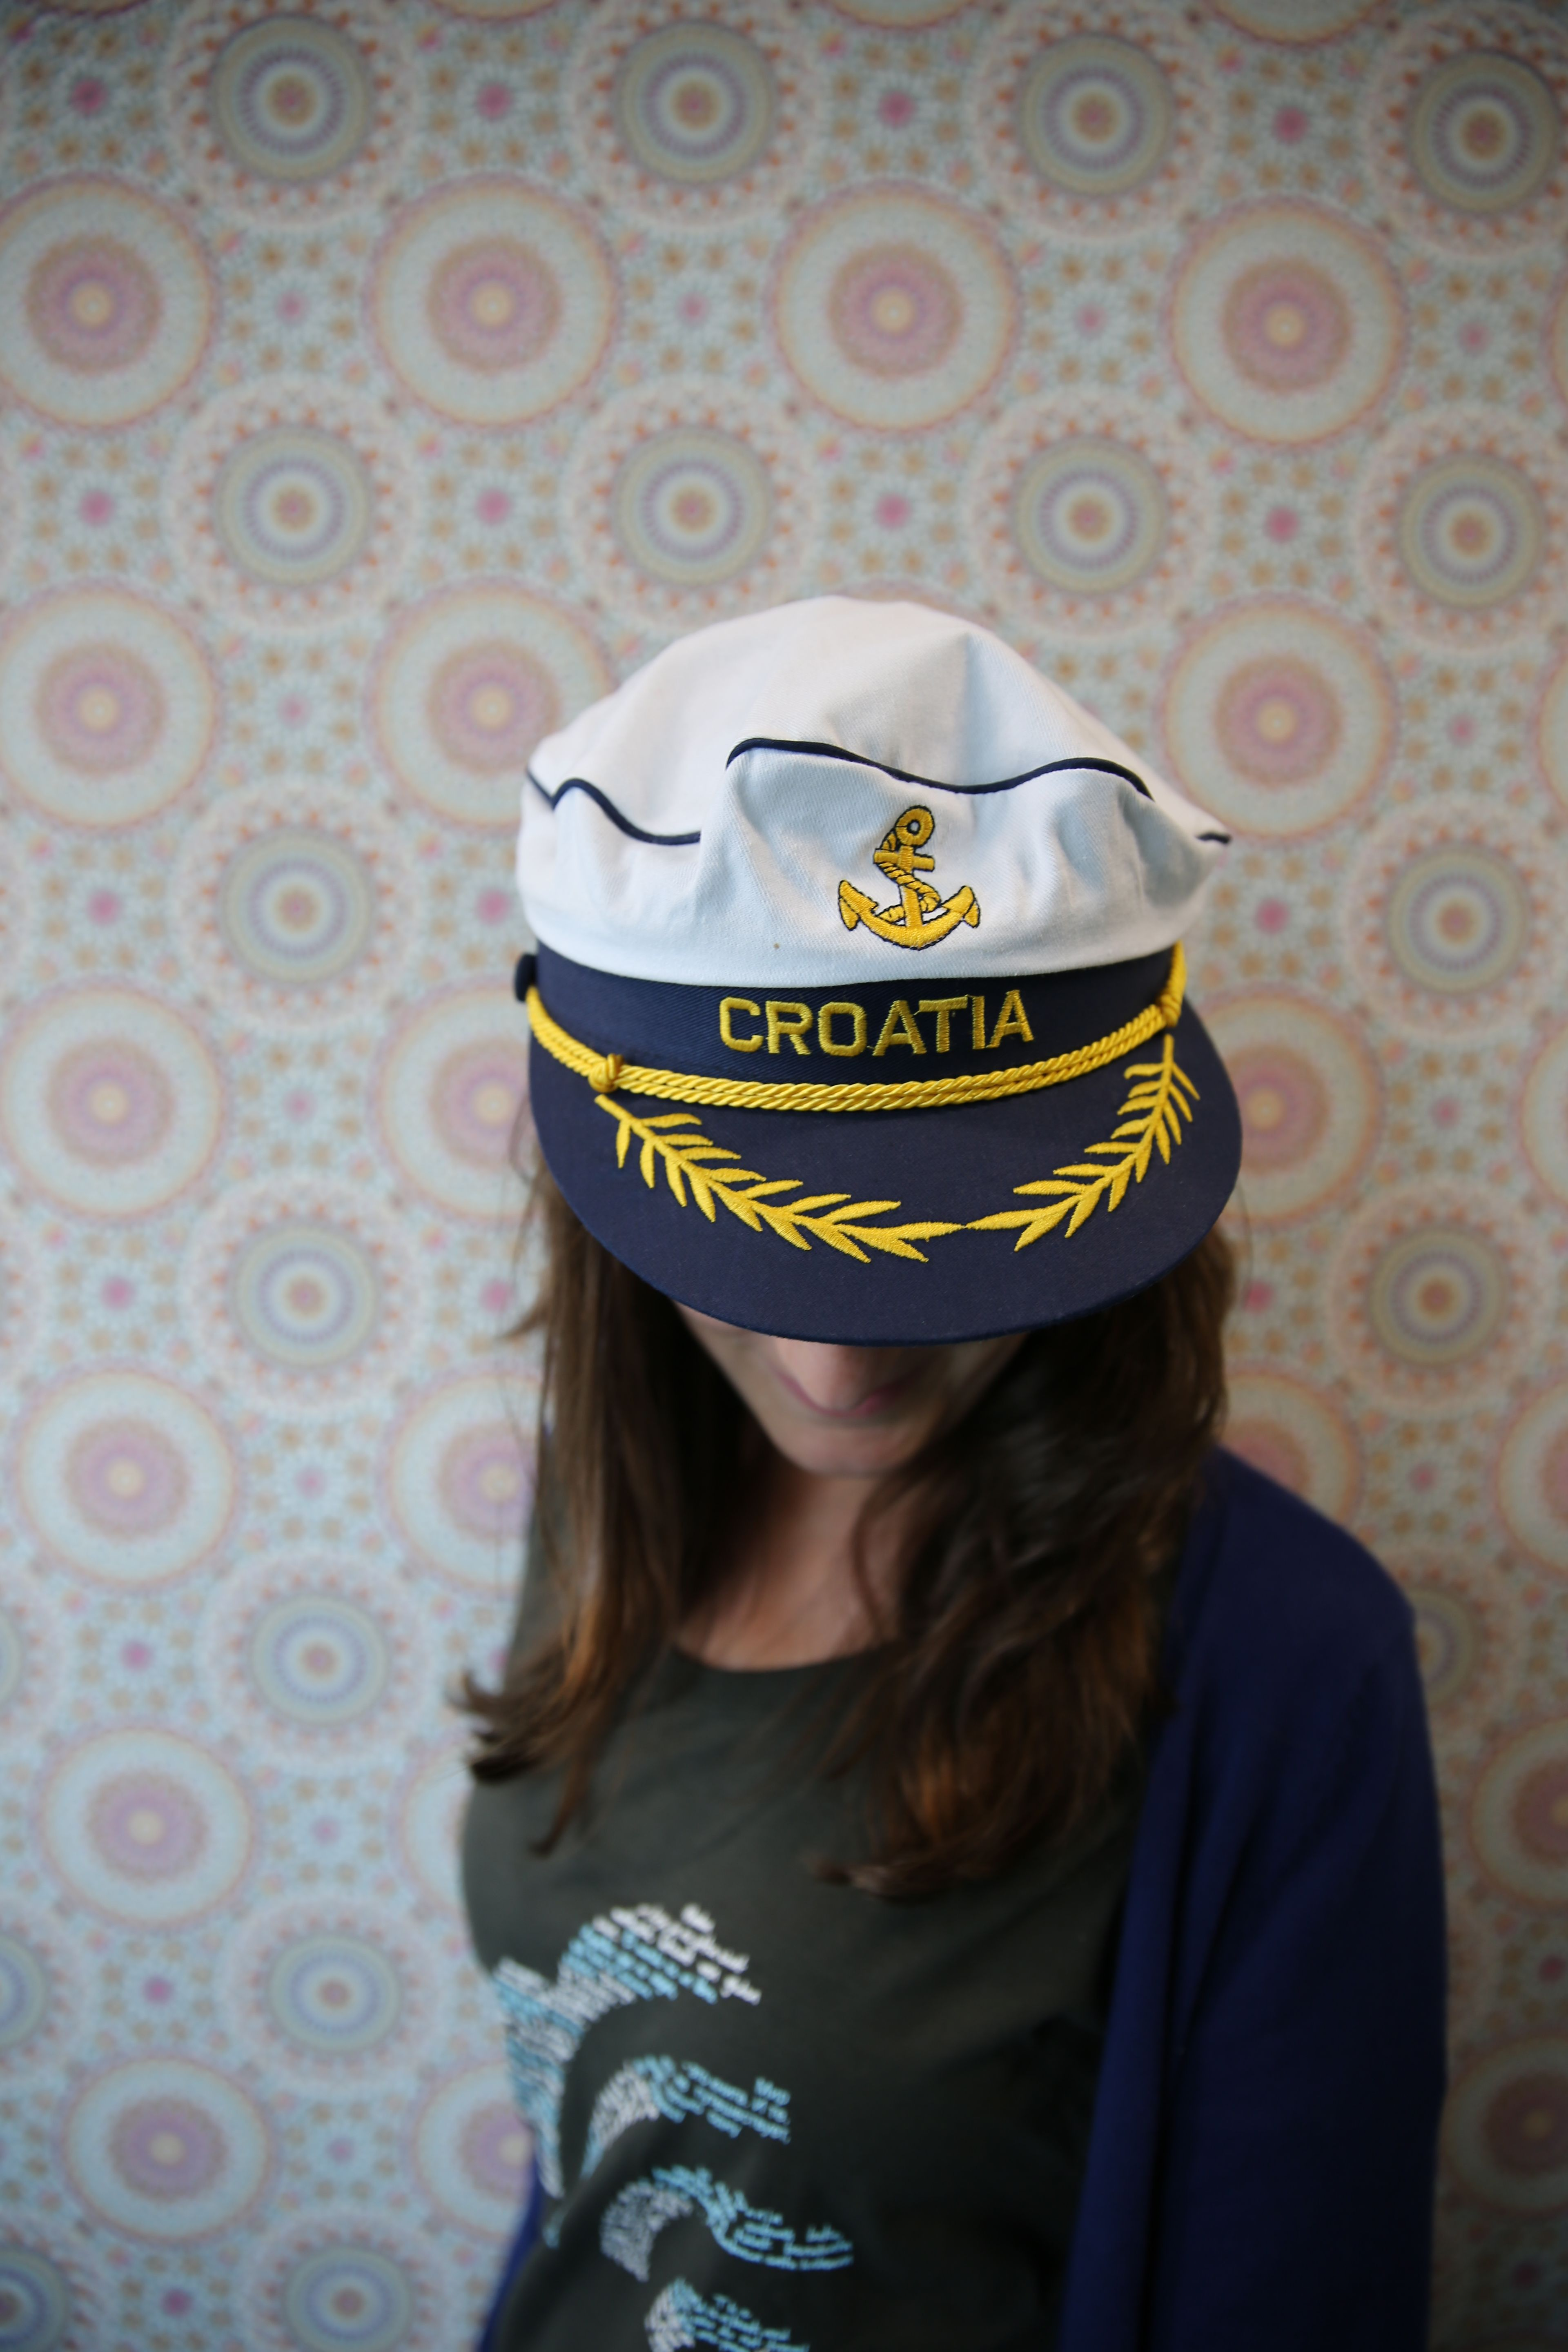 ef0caf1c979 Captain hat from Croatia